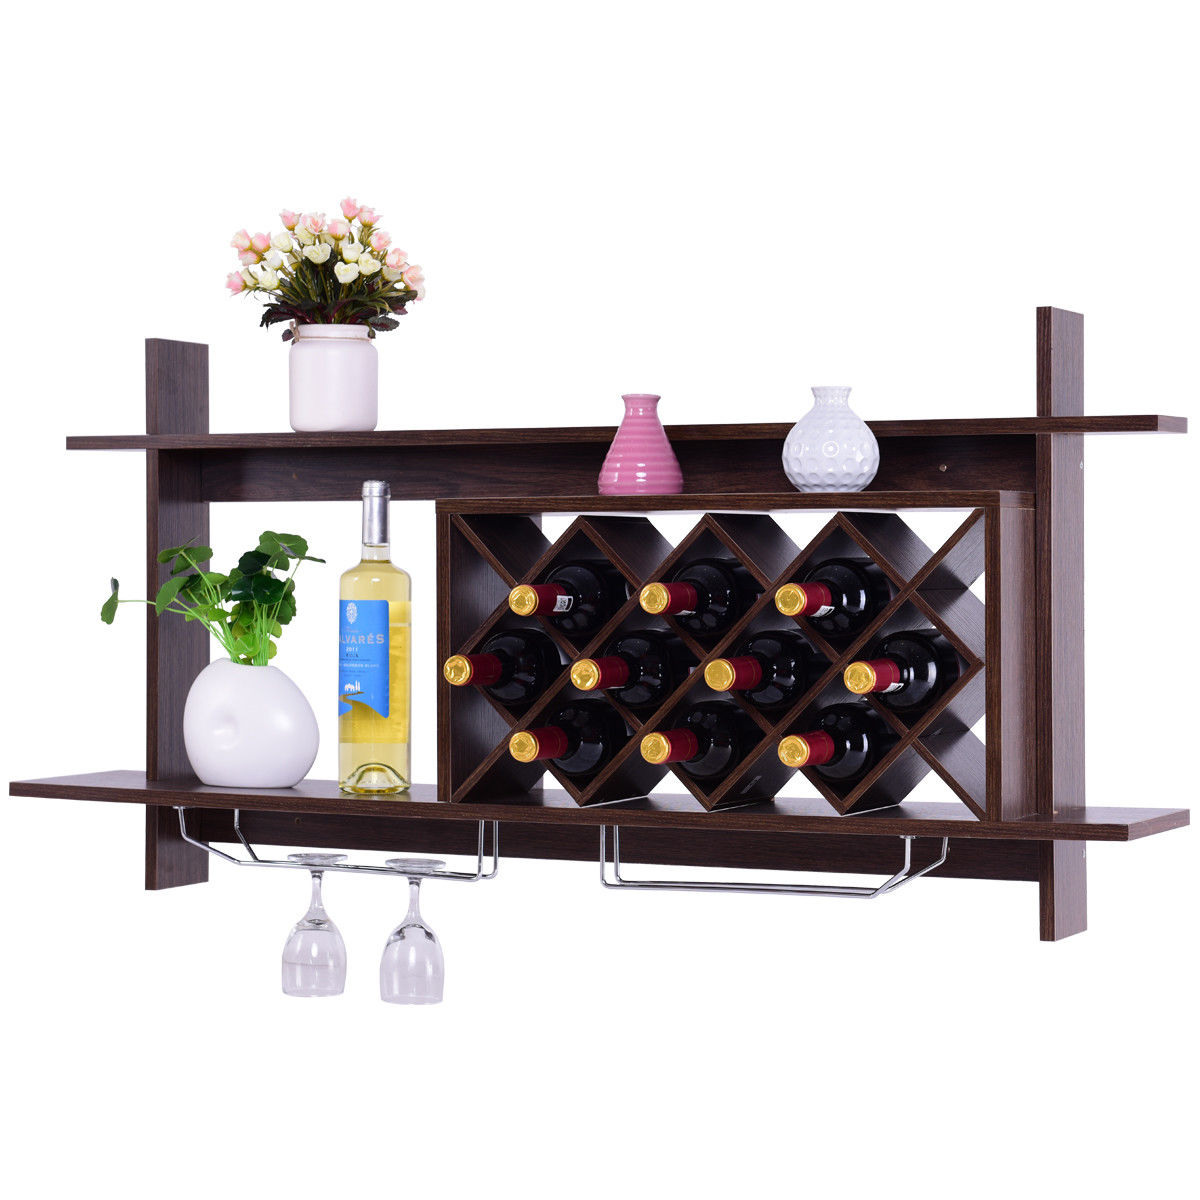 Gymax Wall Mount Wine Rack Organizer With Glass Holder